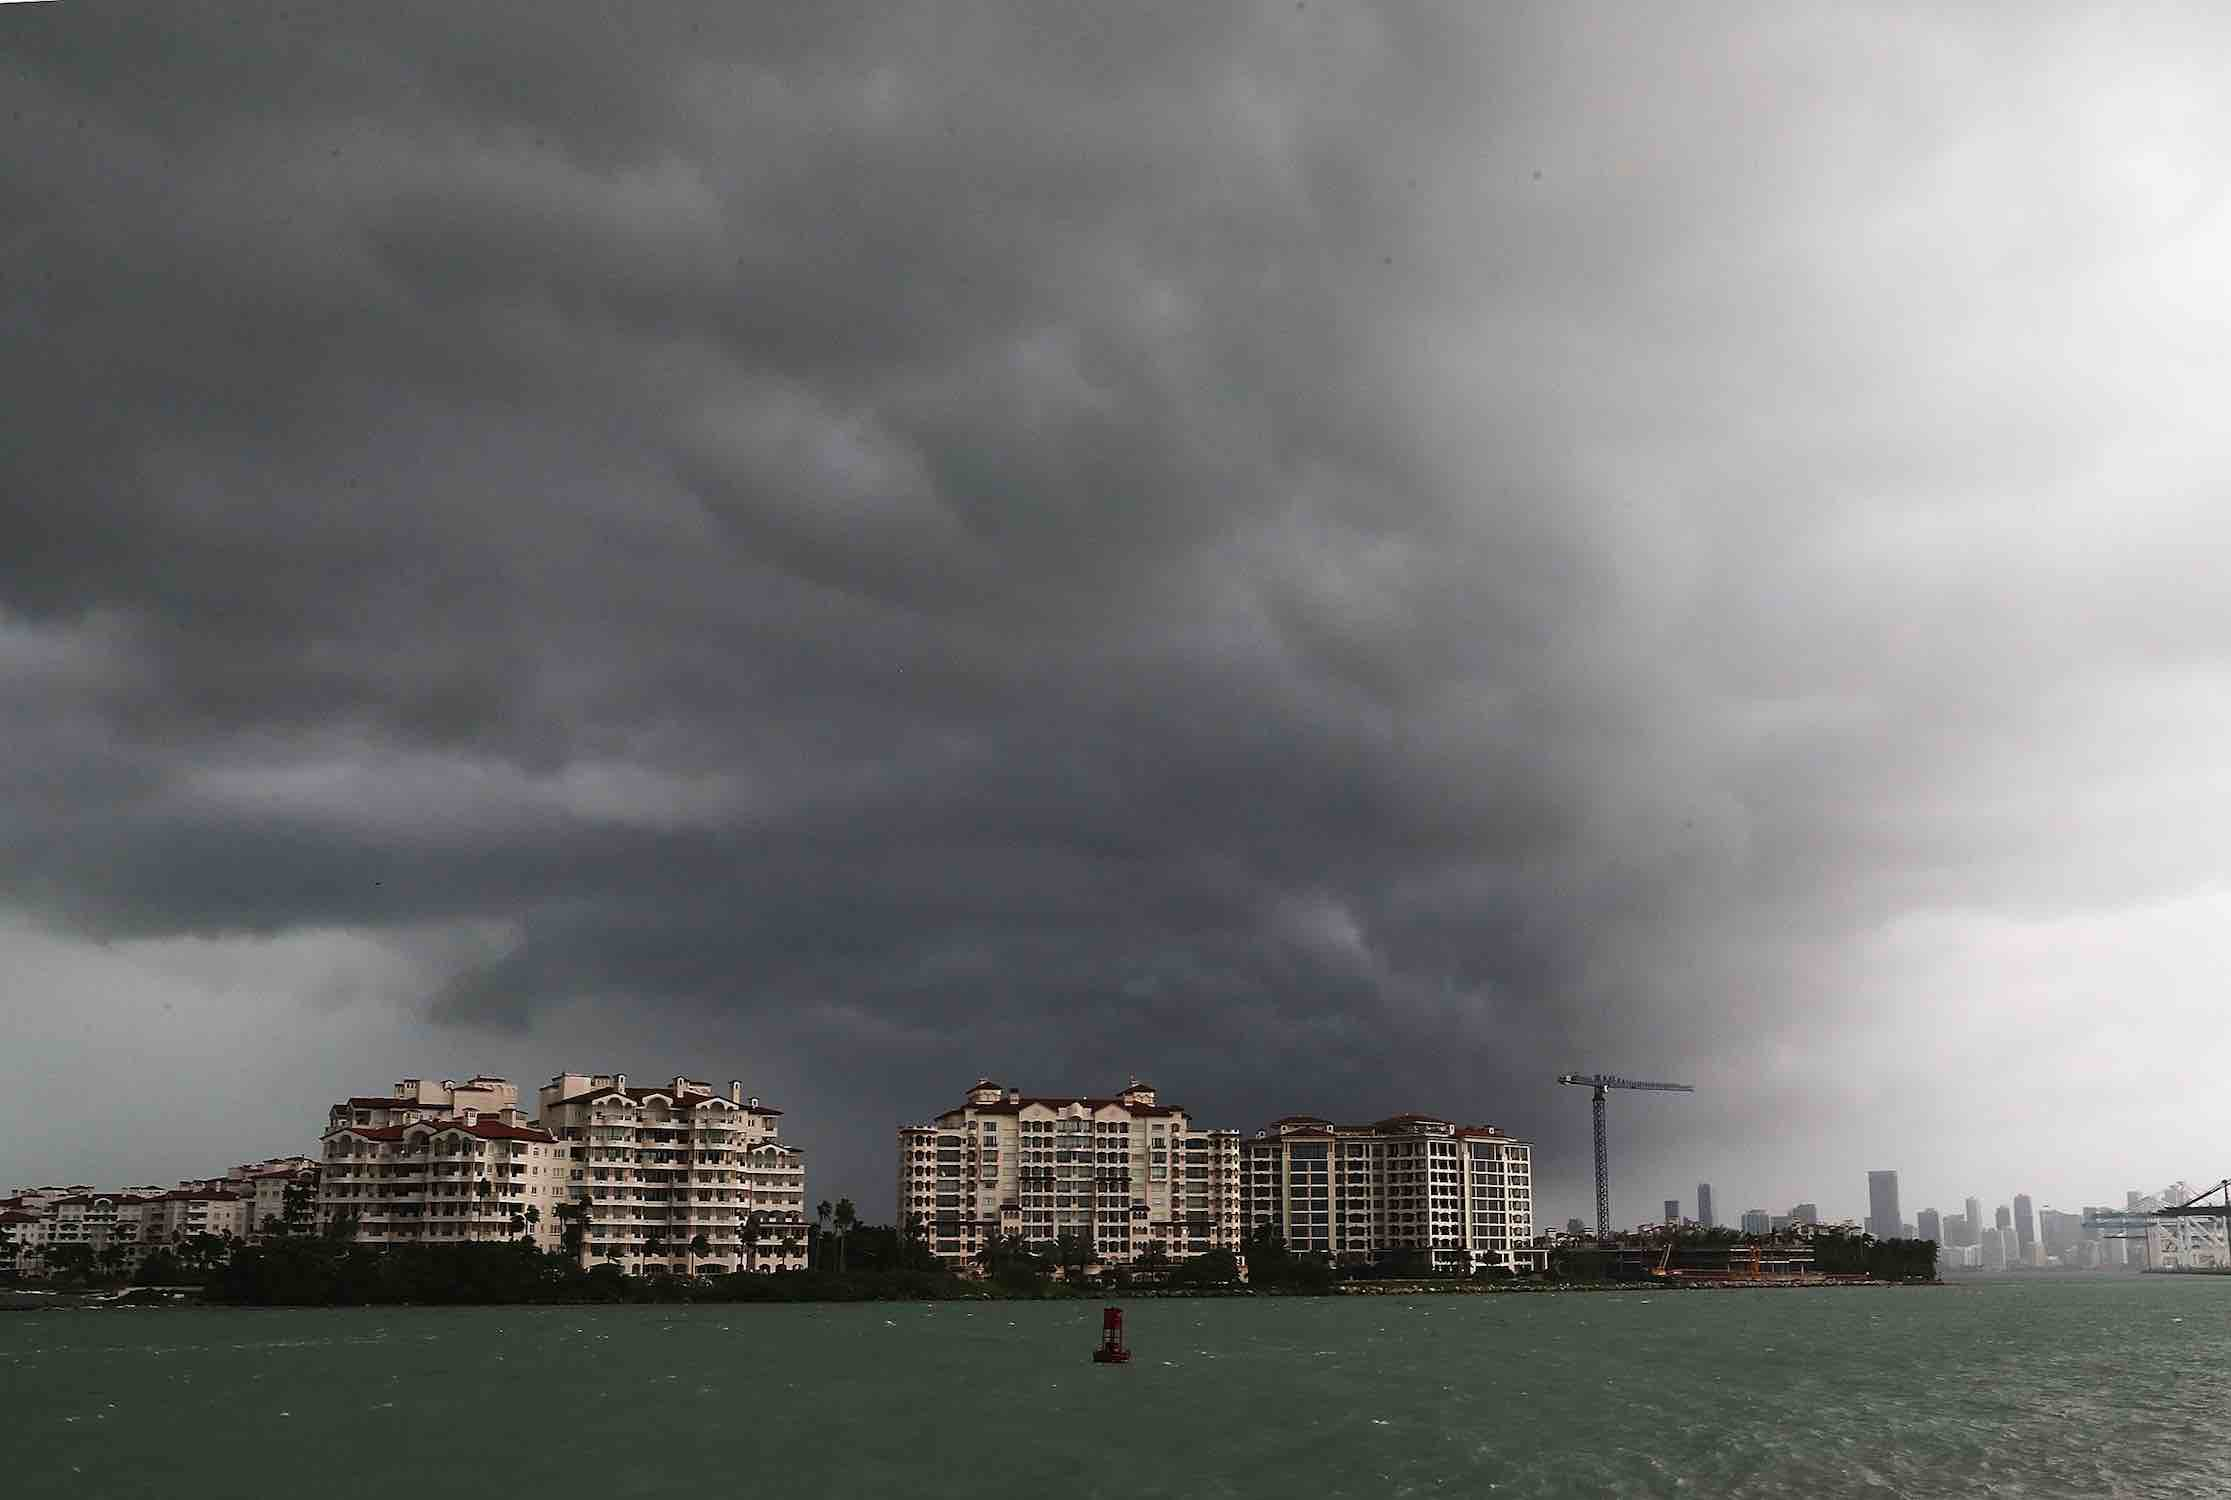 "<div class=""meta image-caption""><div class=""origin-logo origin-image kabc""><span>kabc</span></div><span class=""caption-text"">Storm clouds are seen over Fisher Island as Hurricane Irma approaches on September 9, 2017 in Miami Beach, Florida.  (Joe Raedle/Getty )</span></div>"